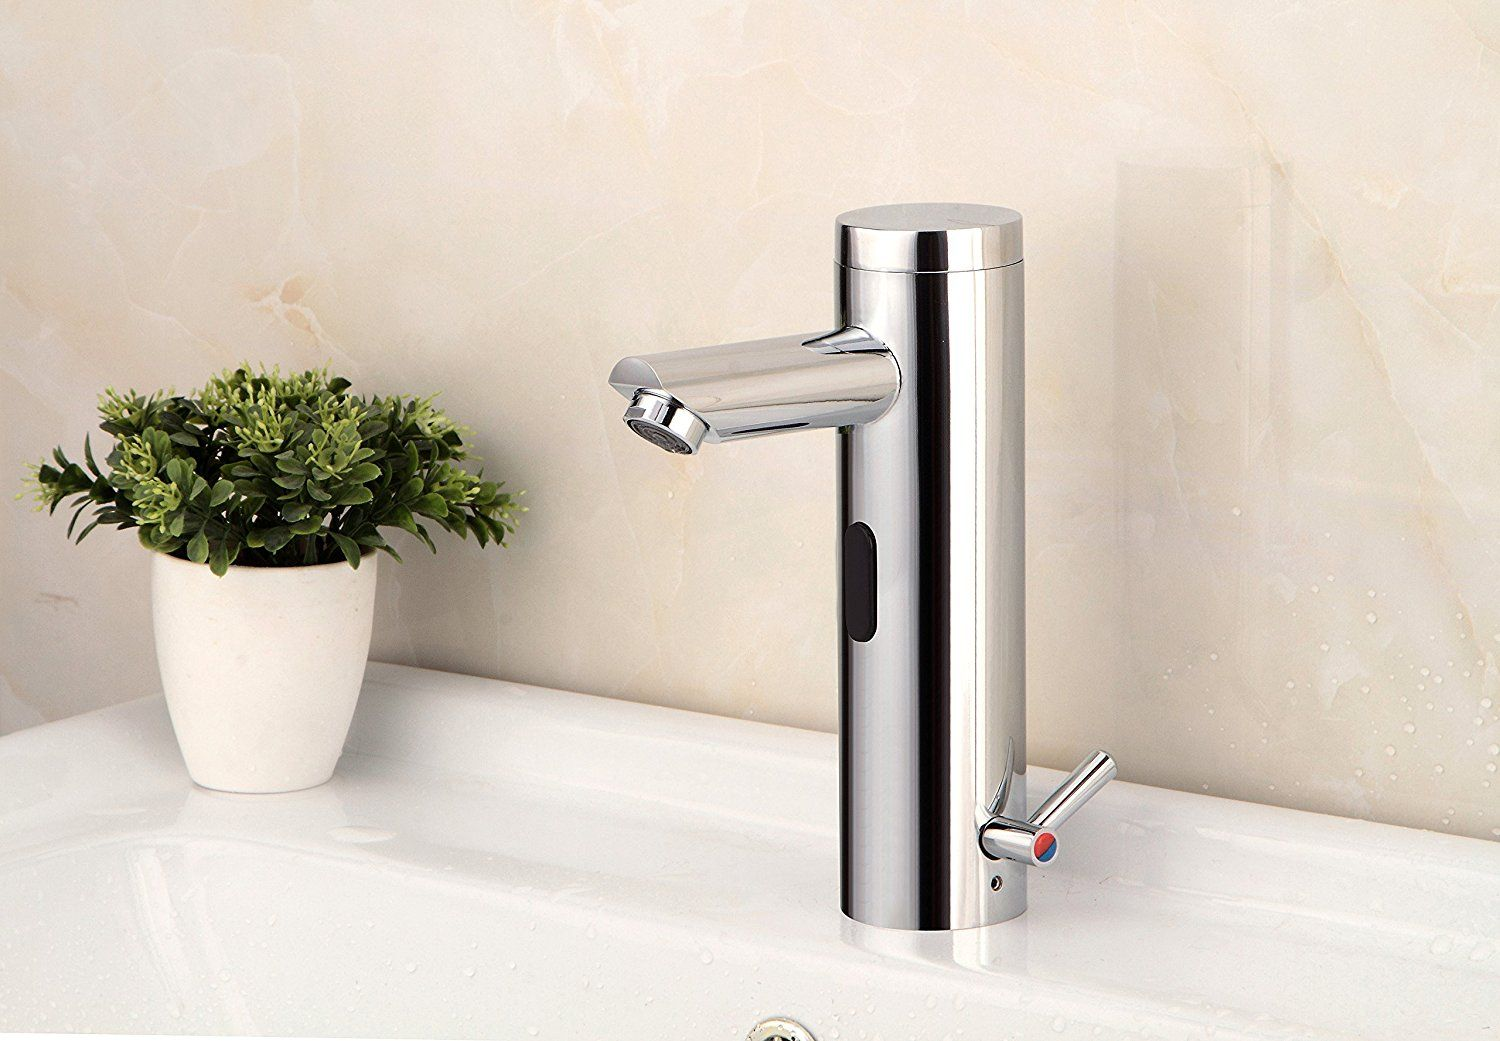 YAJO Modern Single Lever for Temperature Control Touch-Free ...